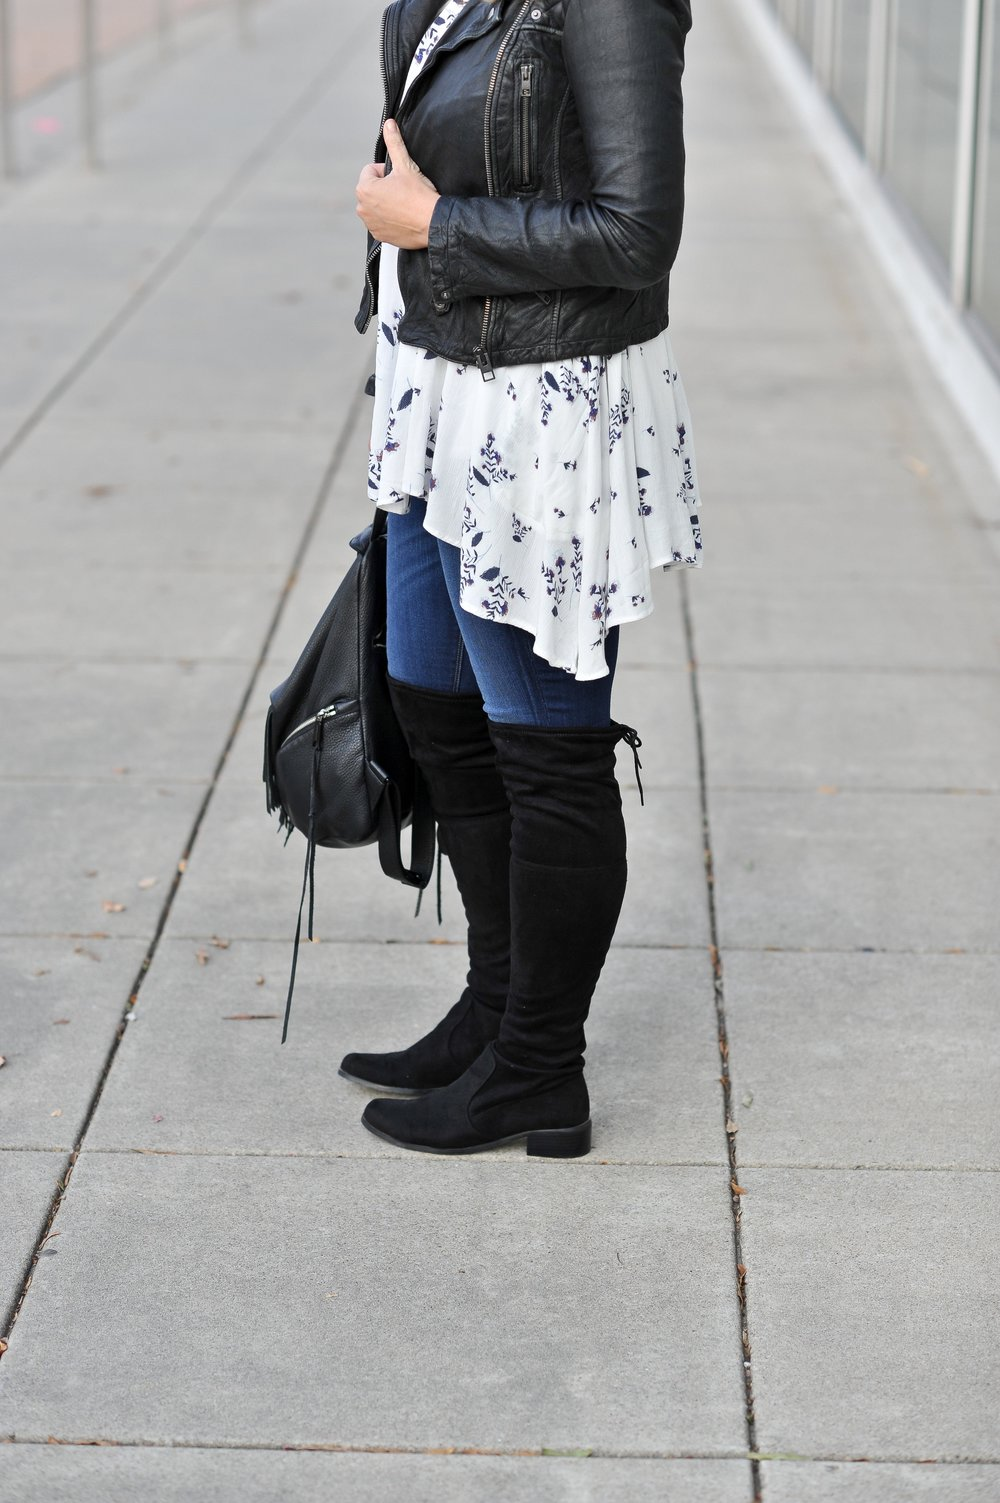 OTK Boots (similar here)  | Hudson Jeans | Free People Tunic | All Saints Leather Jacket | Rebecca Minkoff Backpack | Photos by JNelly Photography